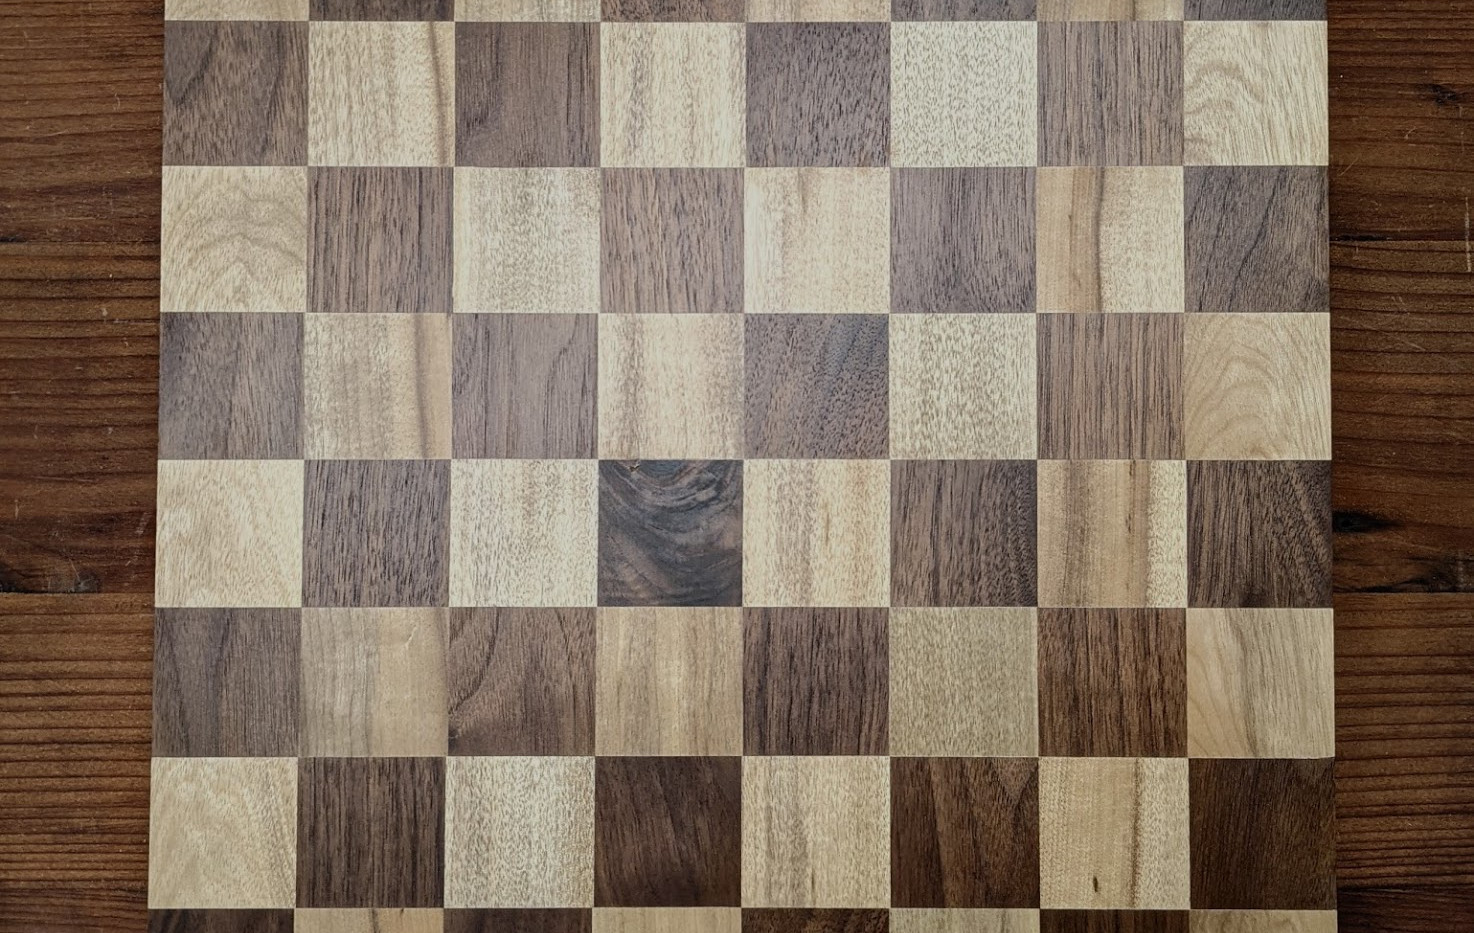 myrtlewood and walnut chess board.jpg